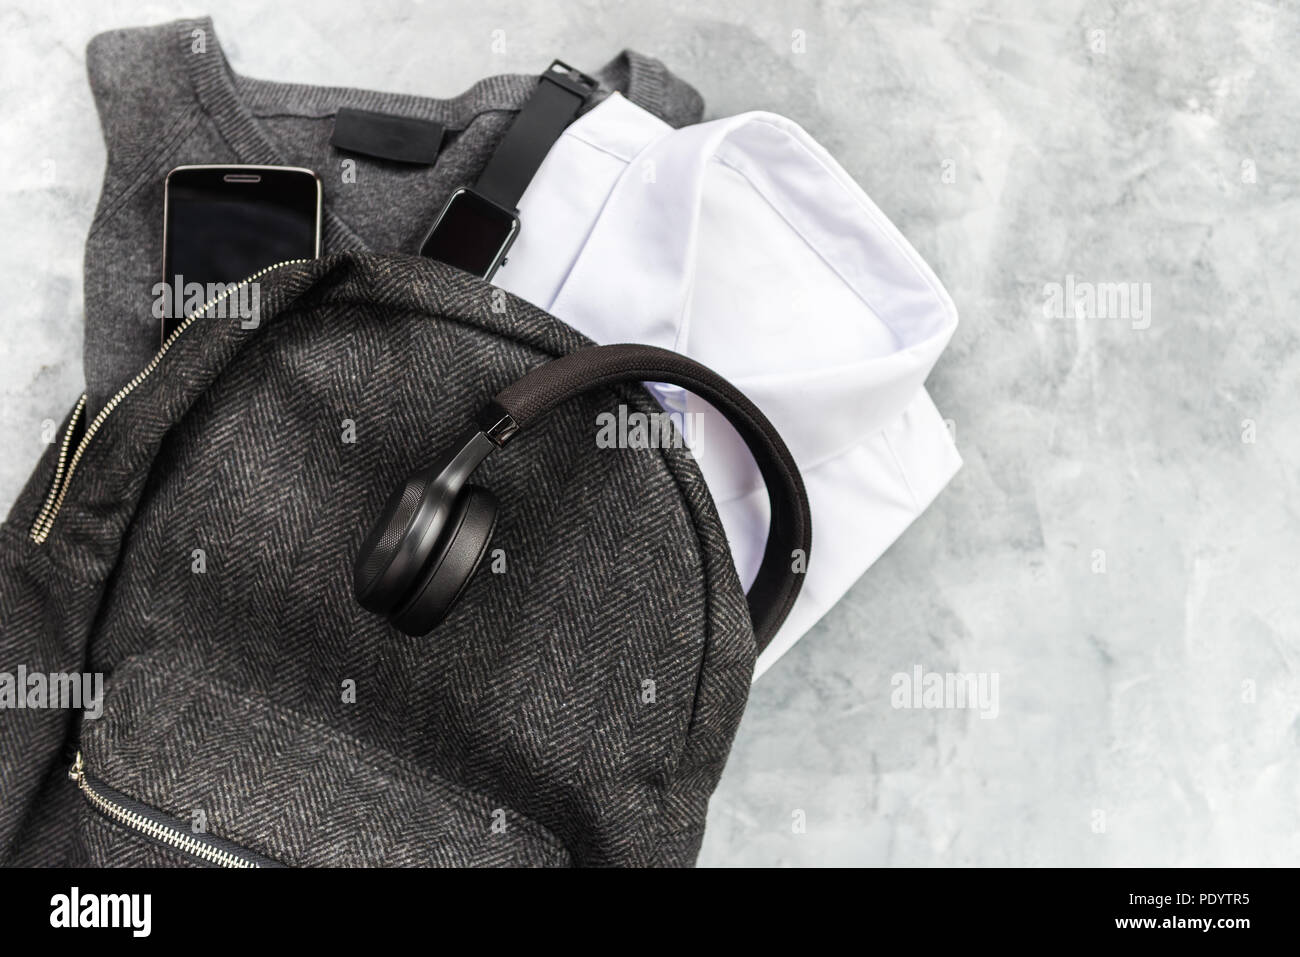 Back to school concept, school uniform such as white shirts and sweater, as well as electronic devices such as smart watch, mobile phone and headphone - Stock Image